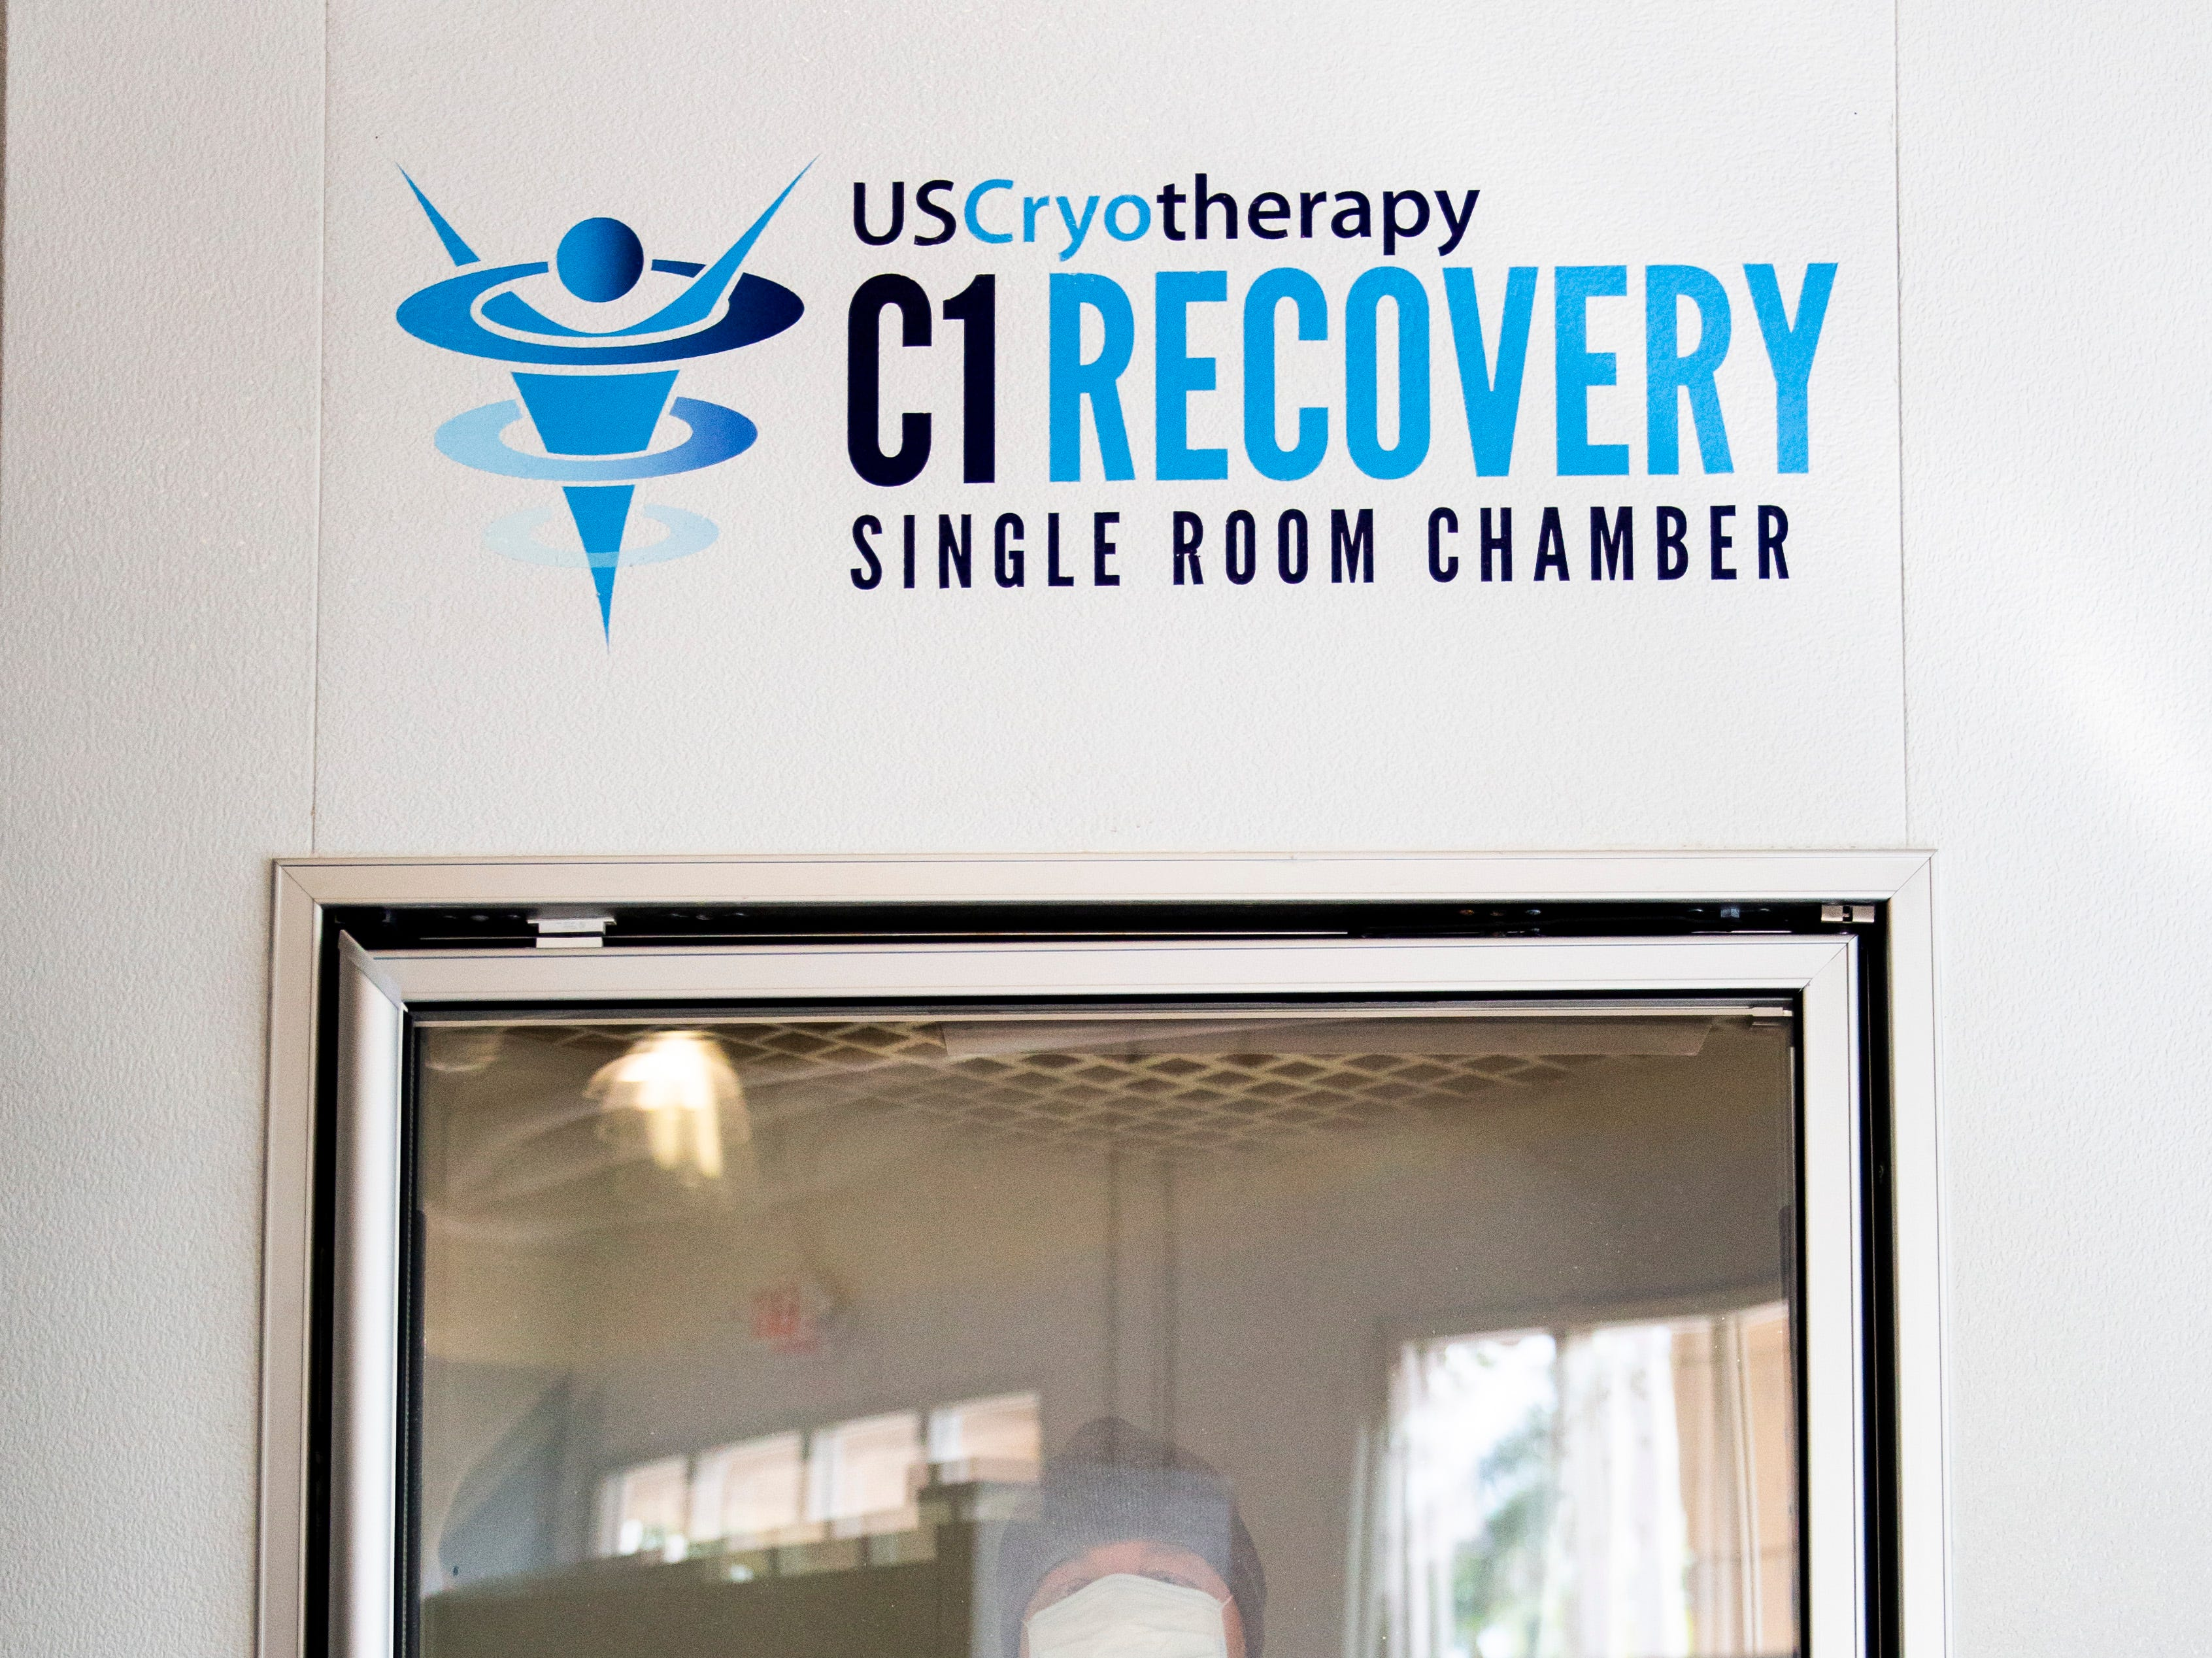 Derek Carlson receives whole body cryotherapy in the single room chamber on Thursday, Nov. 8, 2018, at US Cryotherapy in North Naples.